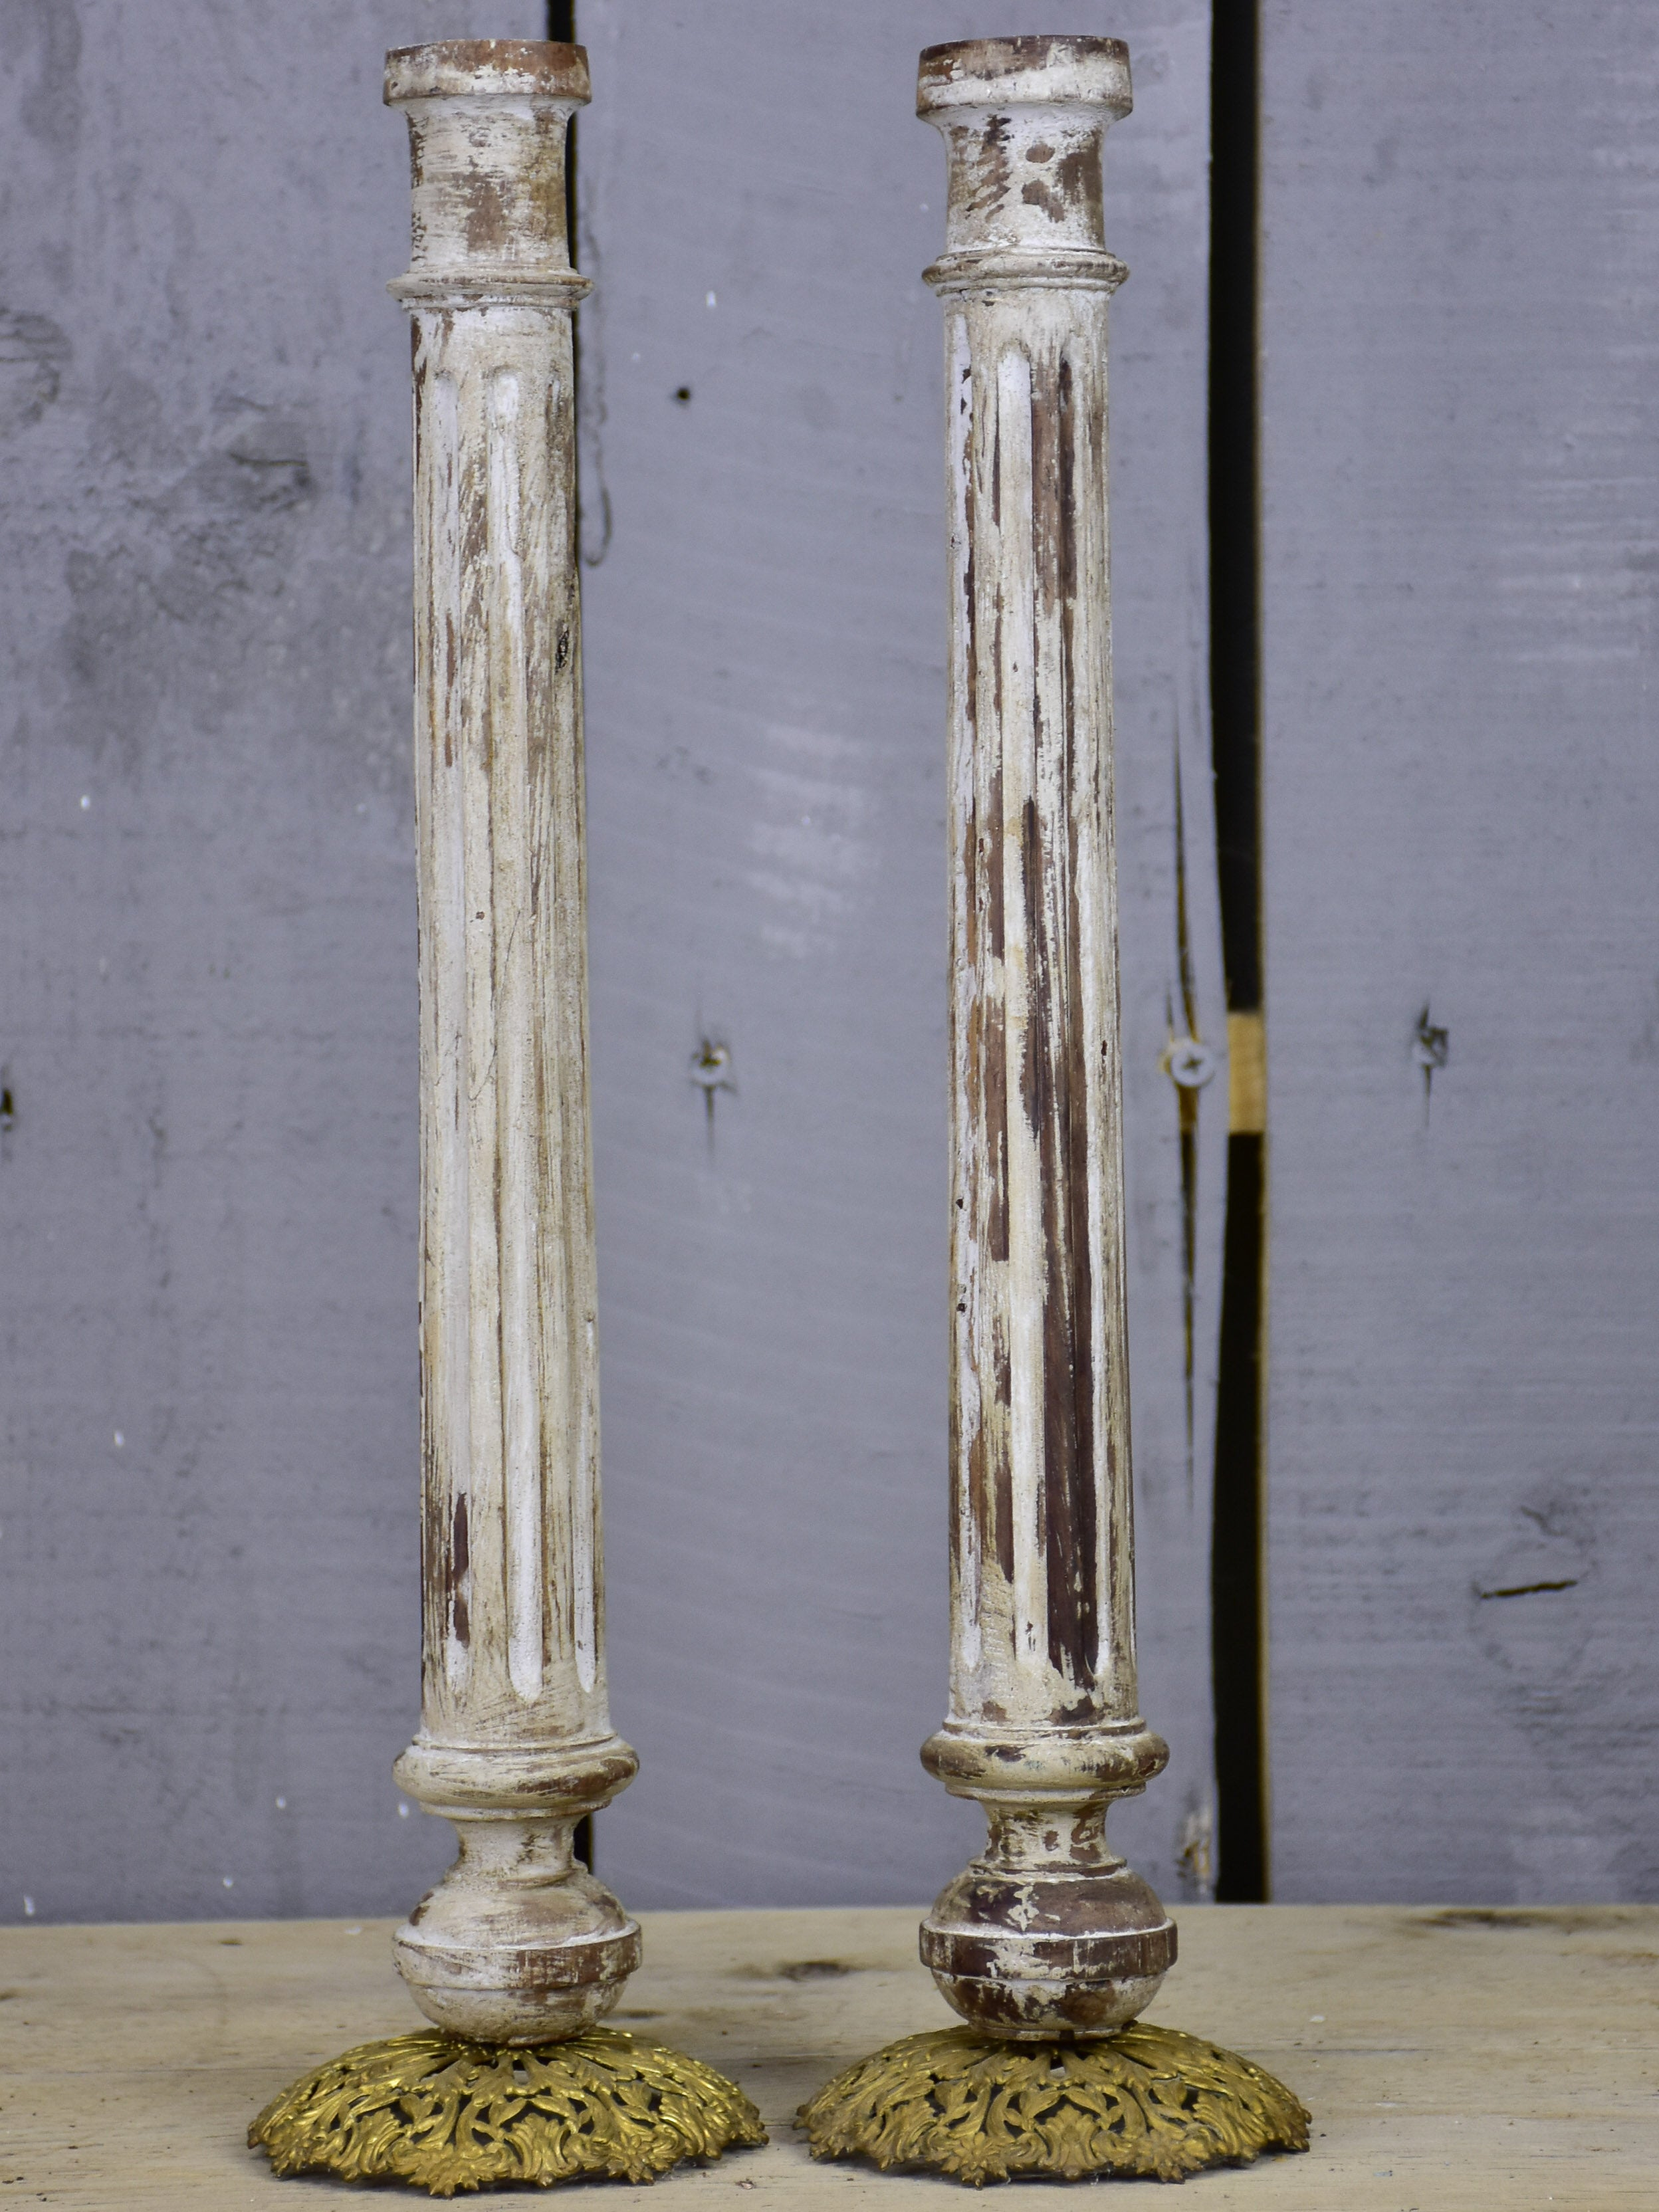 Artisan-made French candlesticks - column shaped